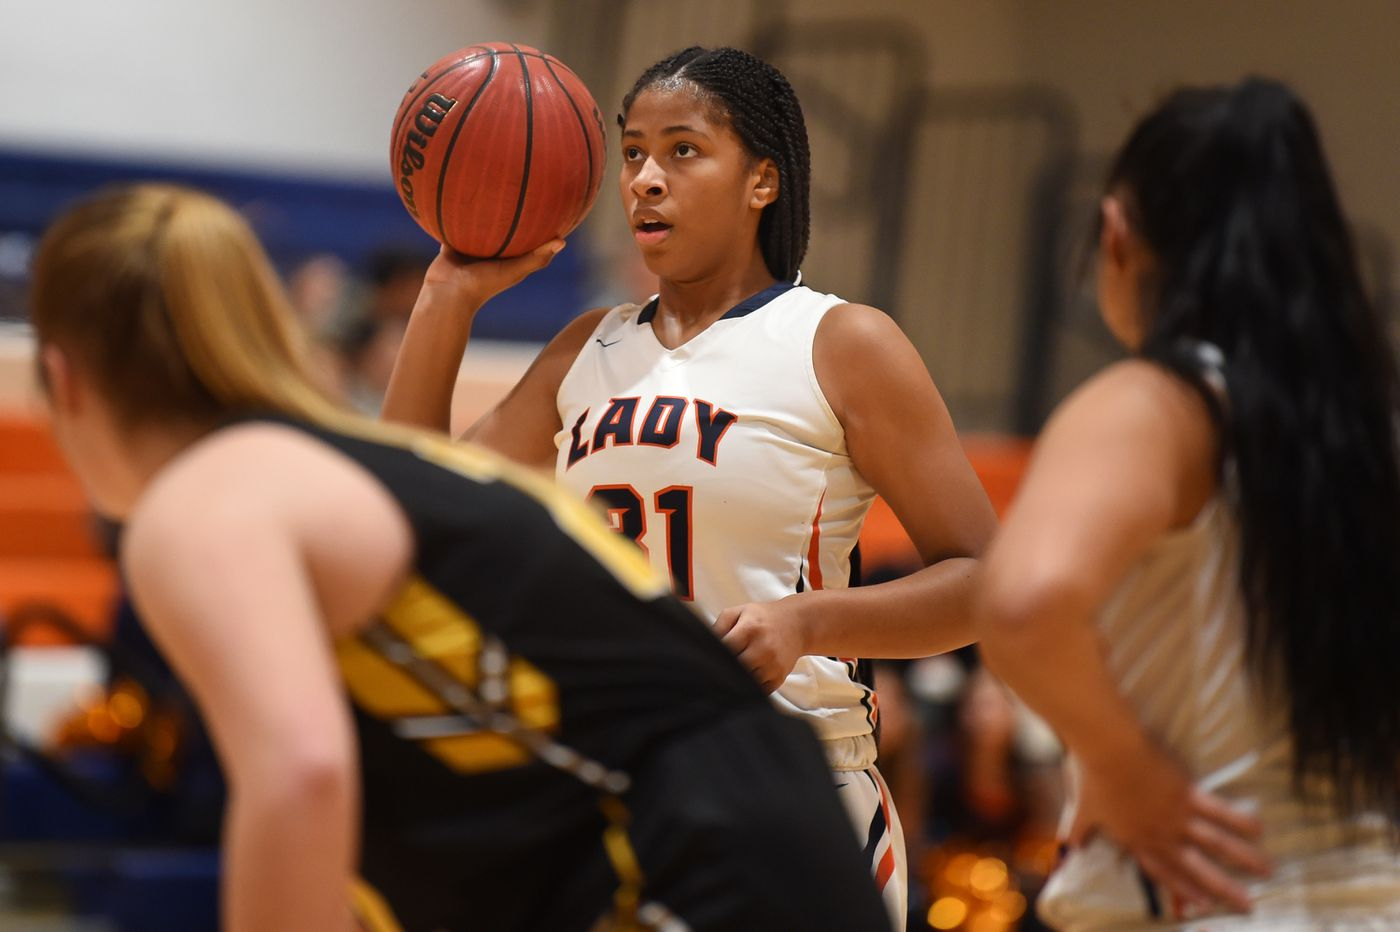 Only a freshman, Overbrook's Imani Gillette is a tower of basketball strength and will